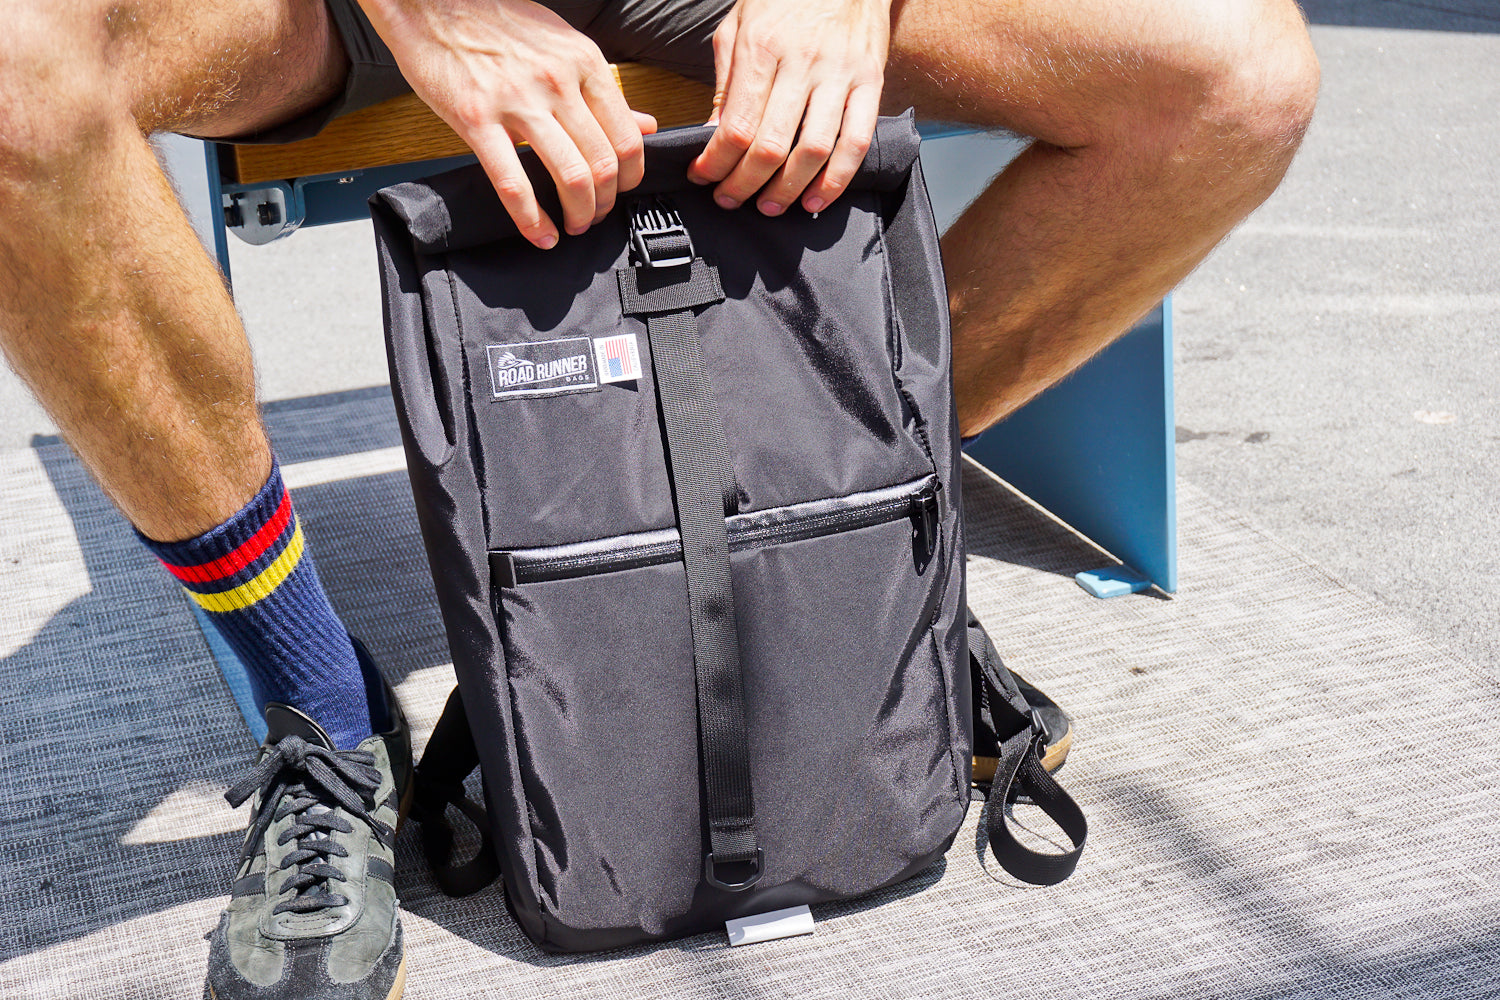 Evil Mini Packable backpack by road runner bags